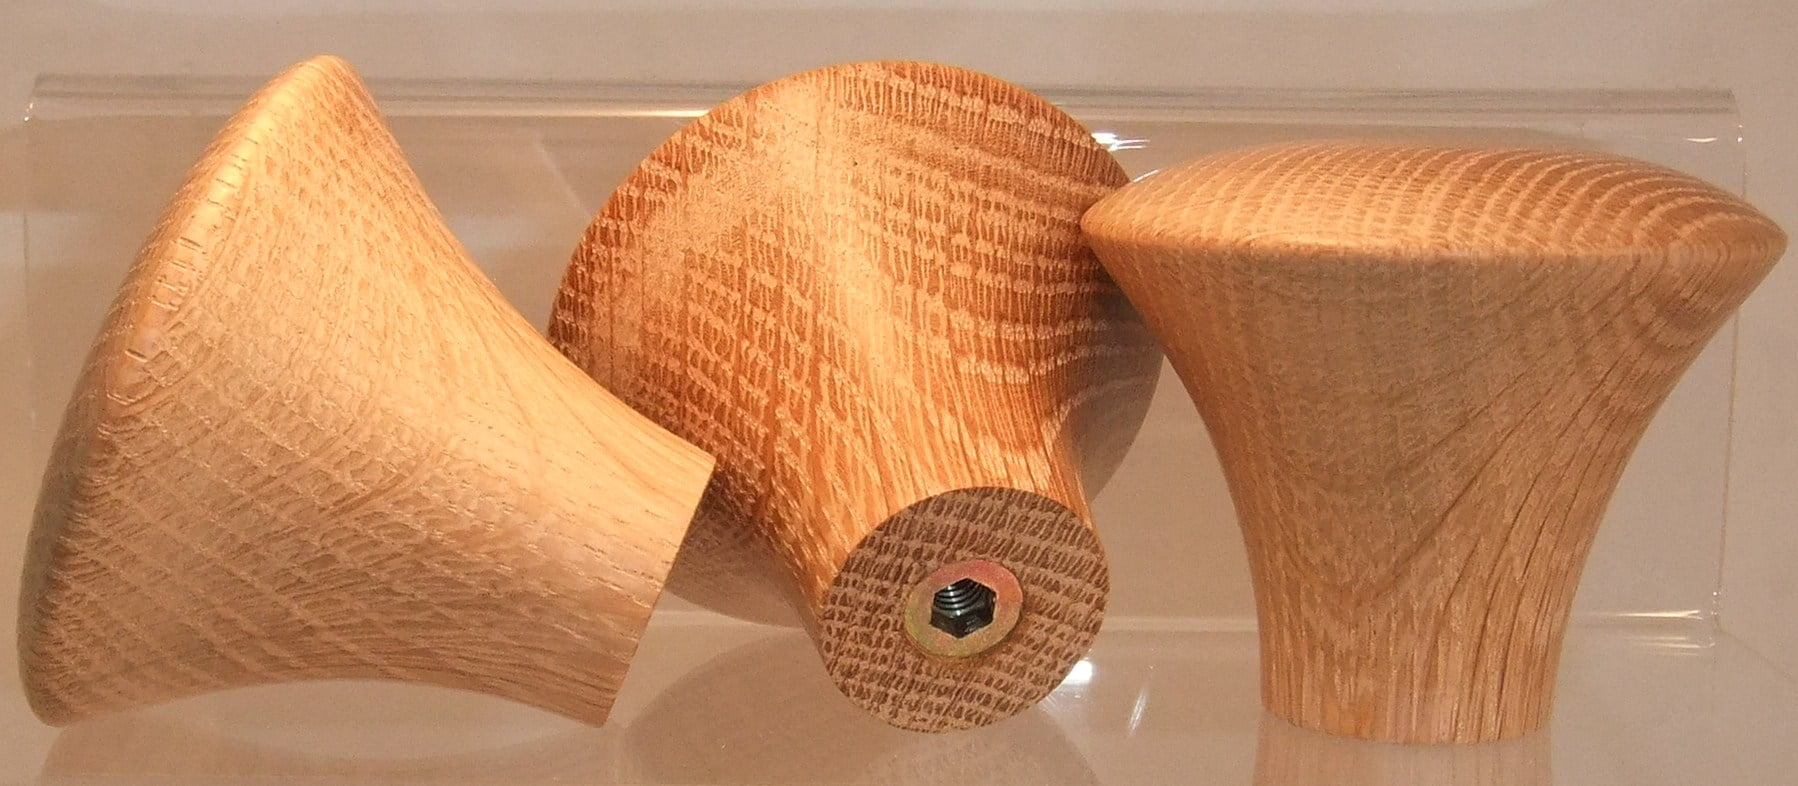 Shaker style knobs   Knobbs Hardware. Oak Cupboard Door Knobs Uk. Home Design Ideas